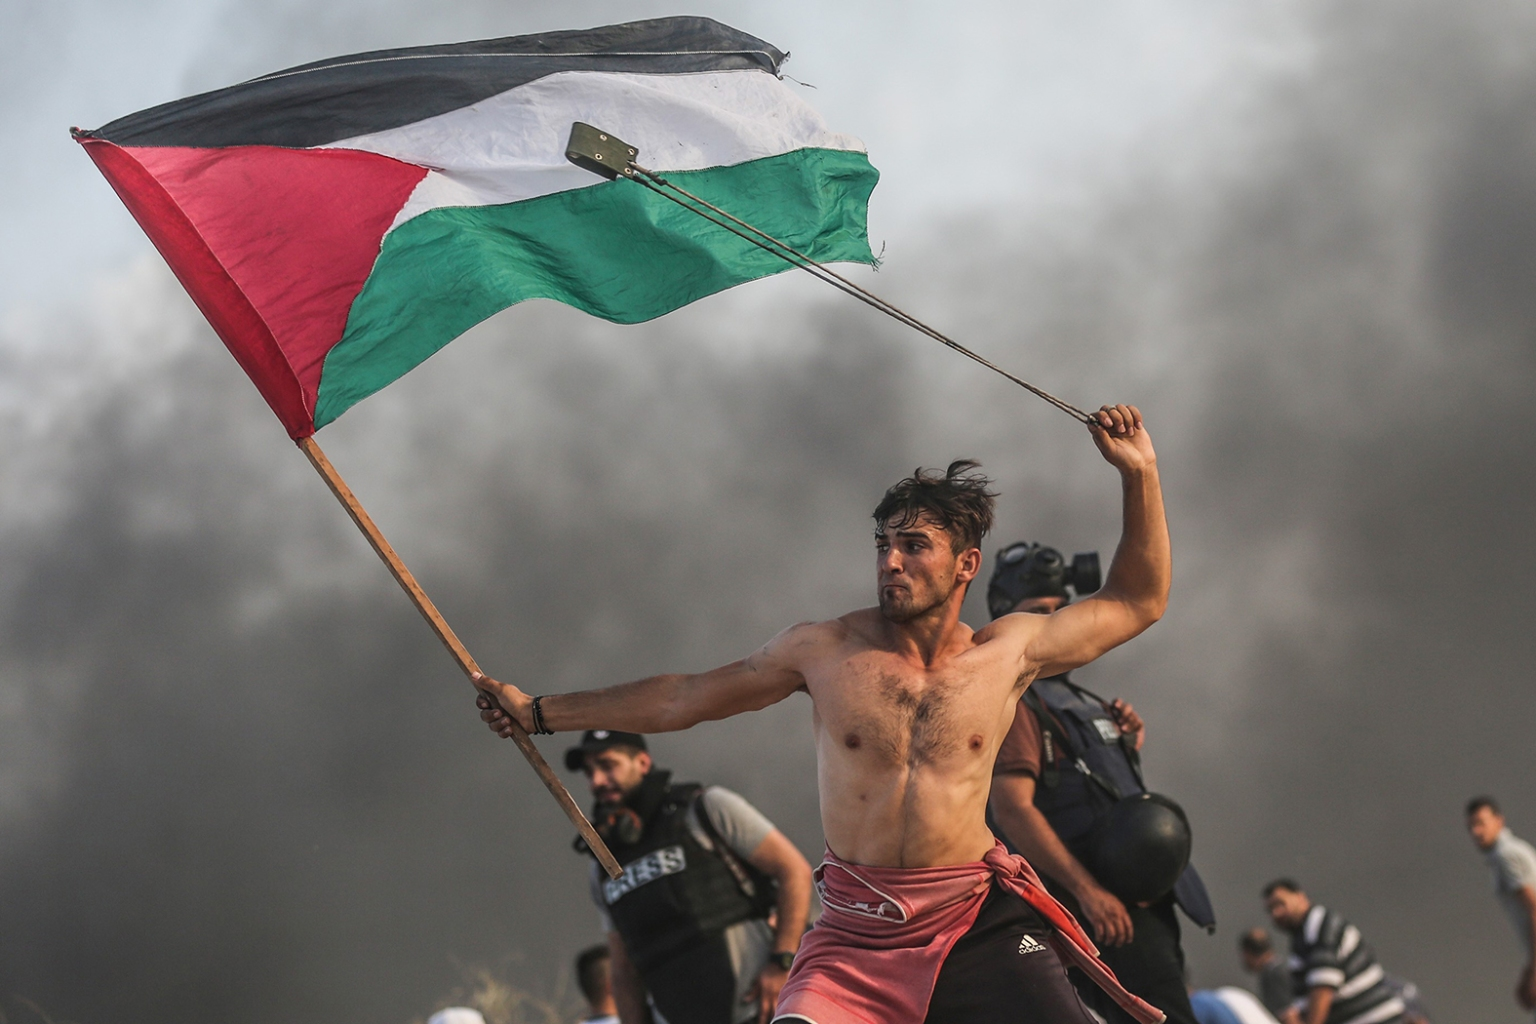 Palestinians throw stones and burn tires in response to Israeli forces' intervention as they gather to support the maritime demonstration to break the Gaza blockade by sea with vessels in Gaza City on Oct. 22. This photo of a shirtless protester went viral after its release, drawing comparisons to the iconic French Revolution painting Liberty Leading the People. MUSTAFA HASSONA/ANADOLU AGENCY/GETTY IMAGES